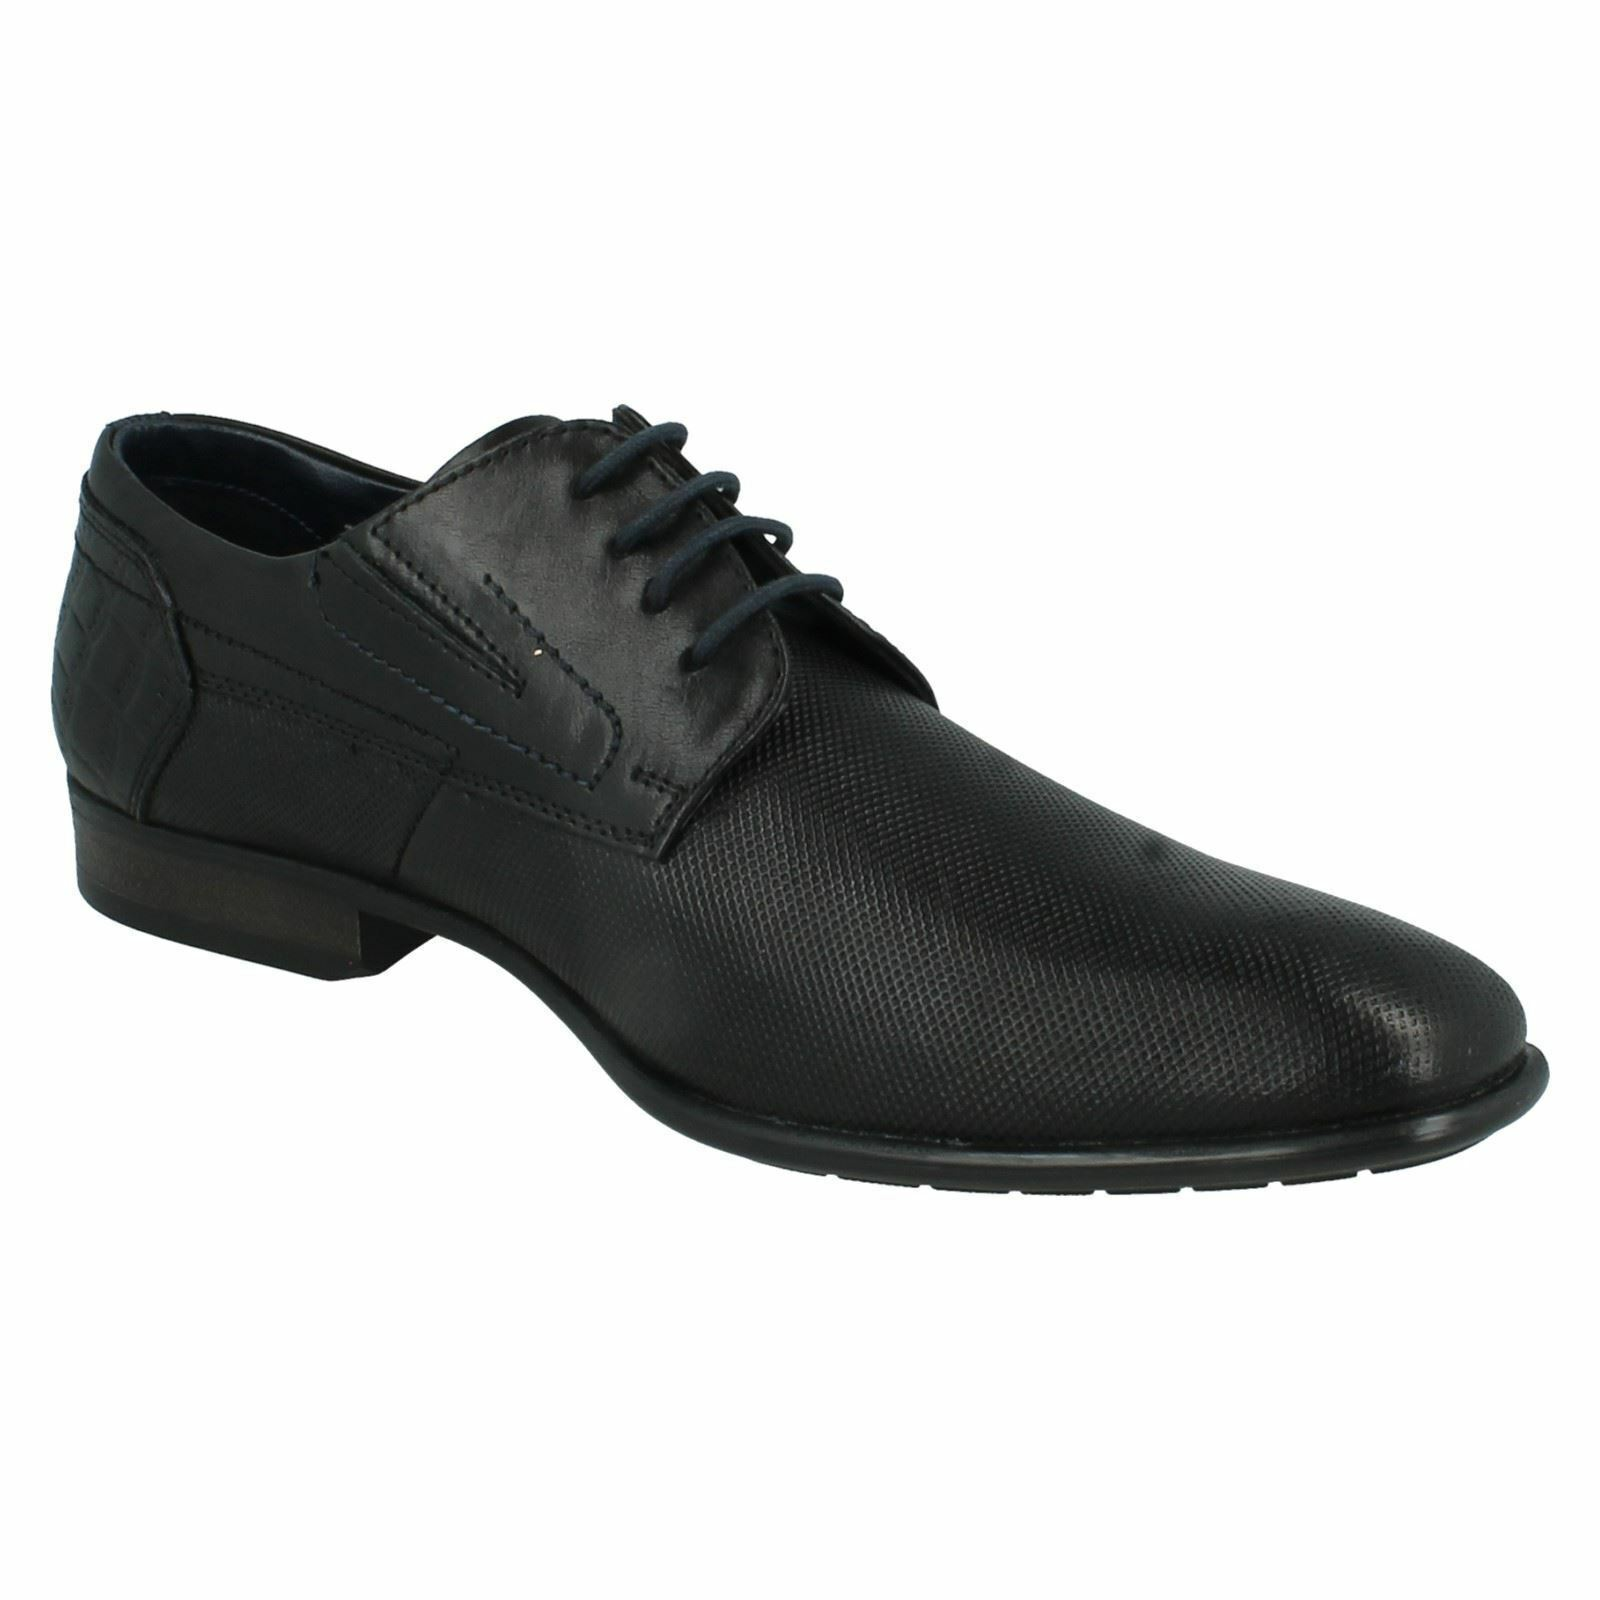 Mens Black Leather Lace Up Formal Bugatti Shoes 311-18801